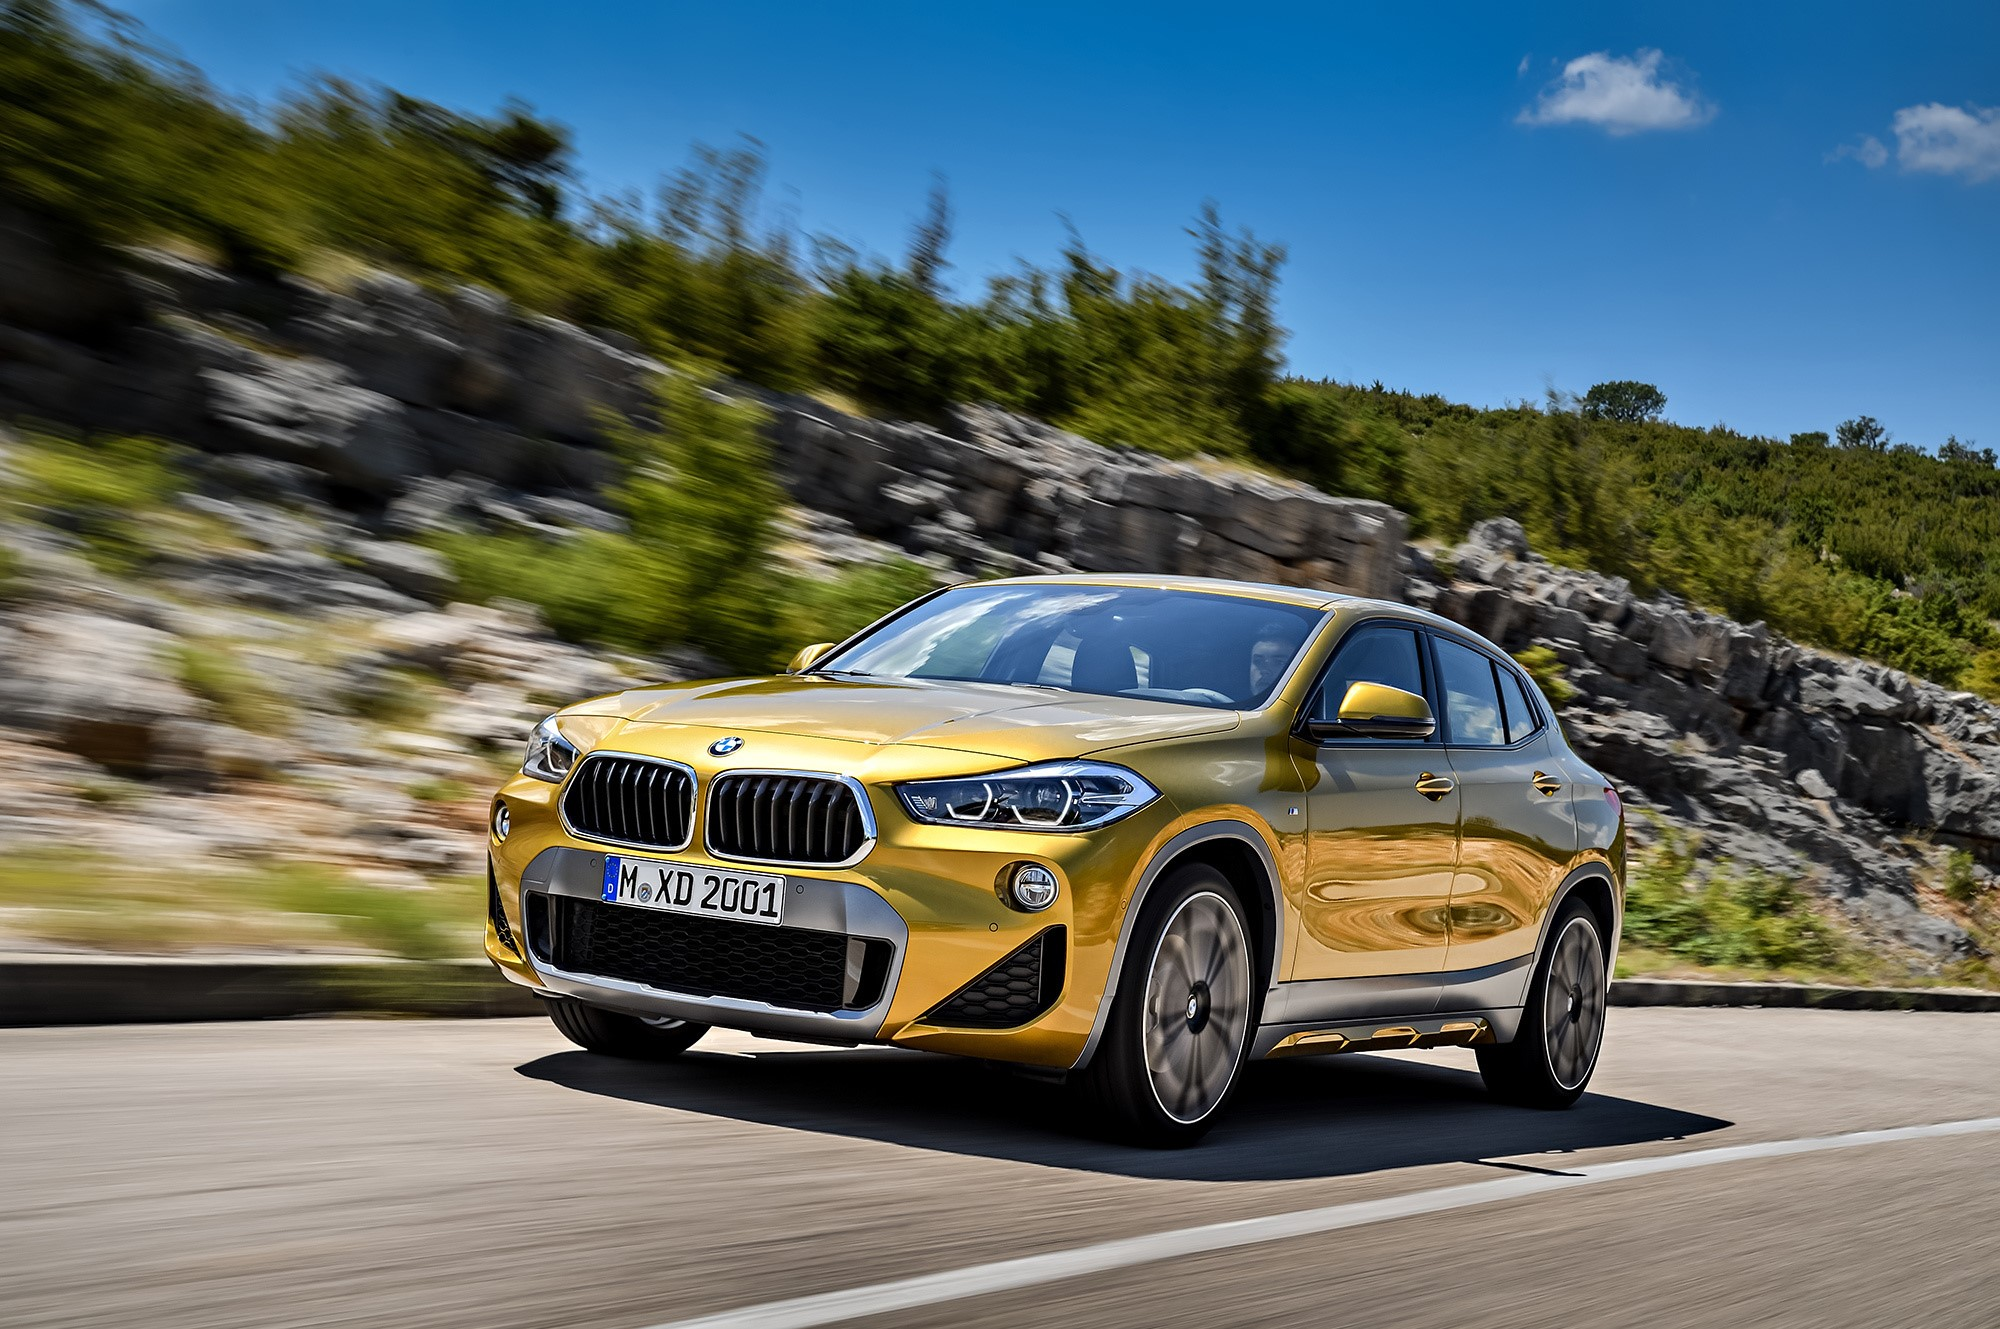 BMW X2 Wallpapers 3